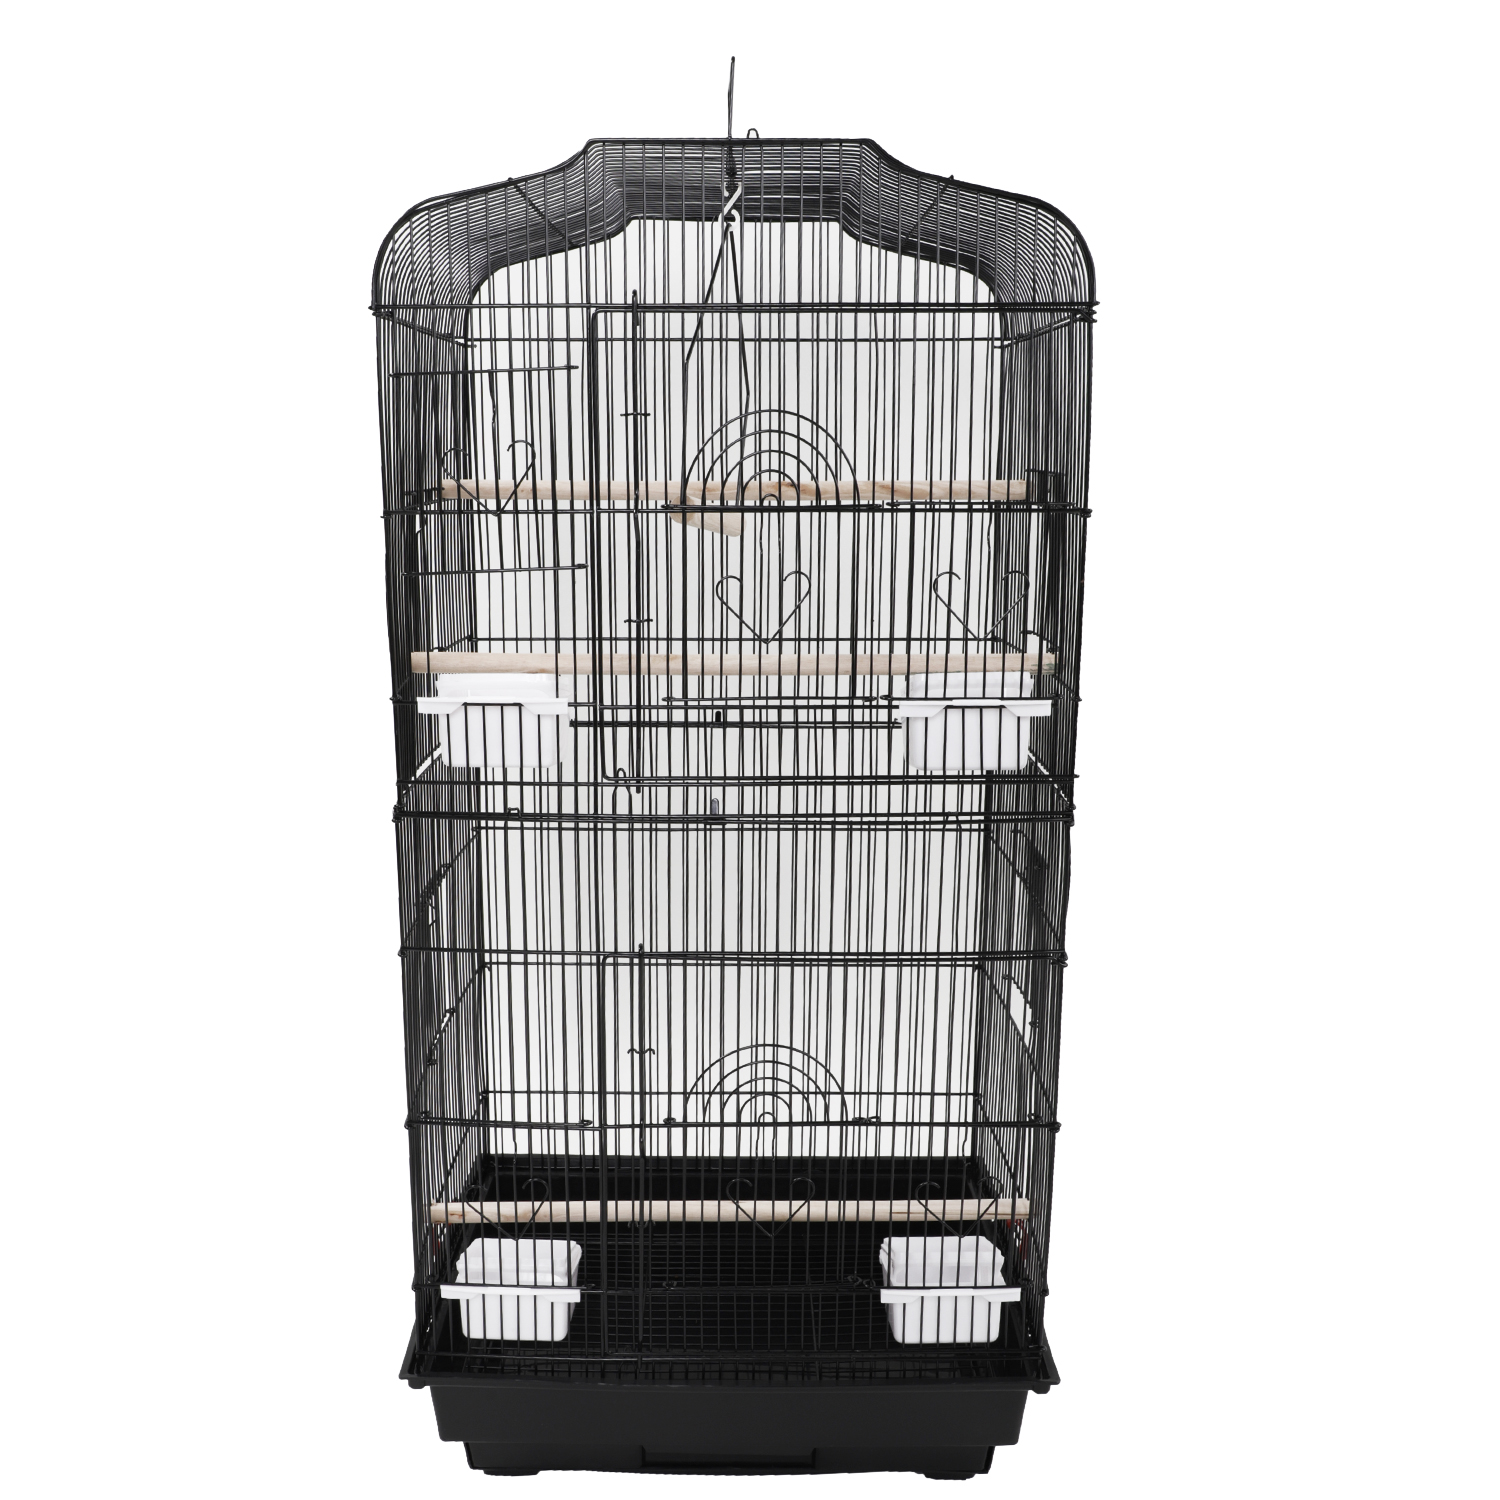 "Ktaxon 37"" Large Bird Cage w  Wood Perches & Food Cups Black by"